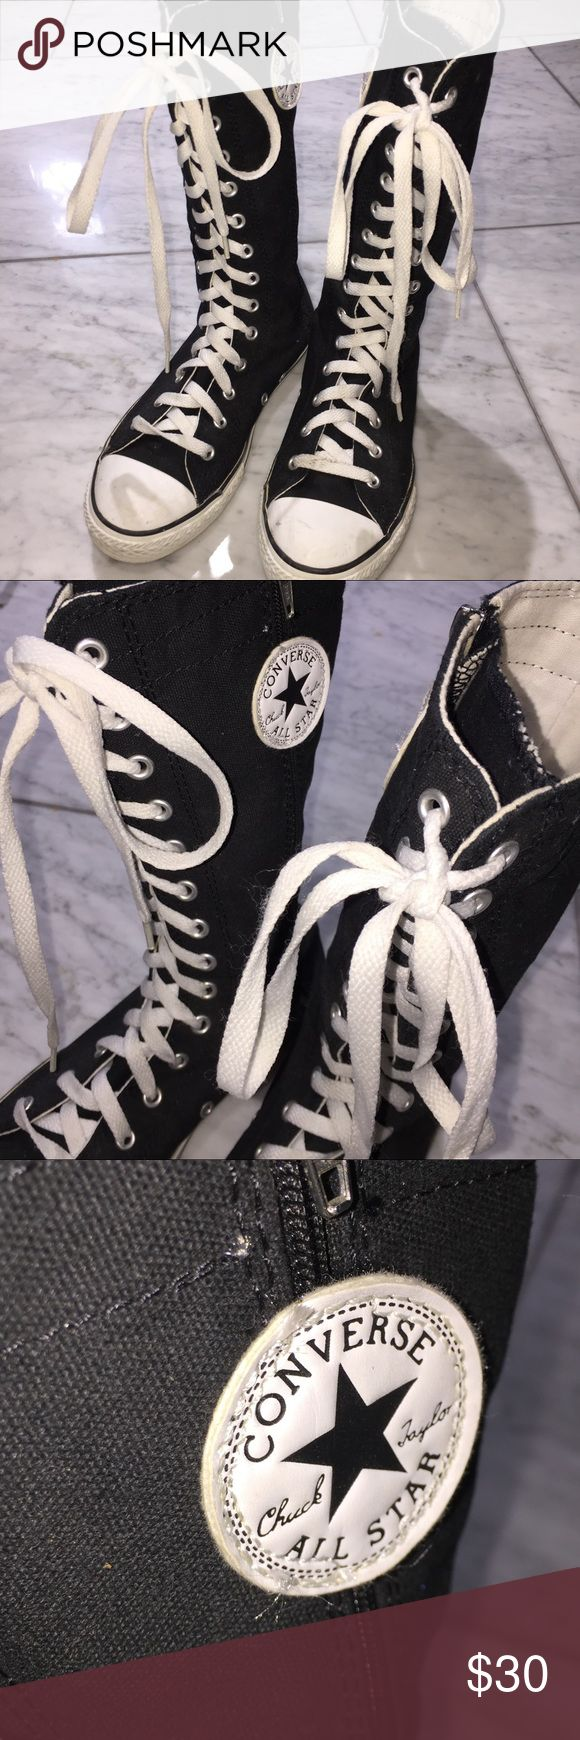 Converse Knee High Boots Kids SZ 4 Used Converse high knee boots Kids SZ 4 in black! Only worn a handful of times! Cute for any edgy little girlies :) Converse Shoes Boots